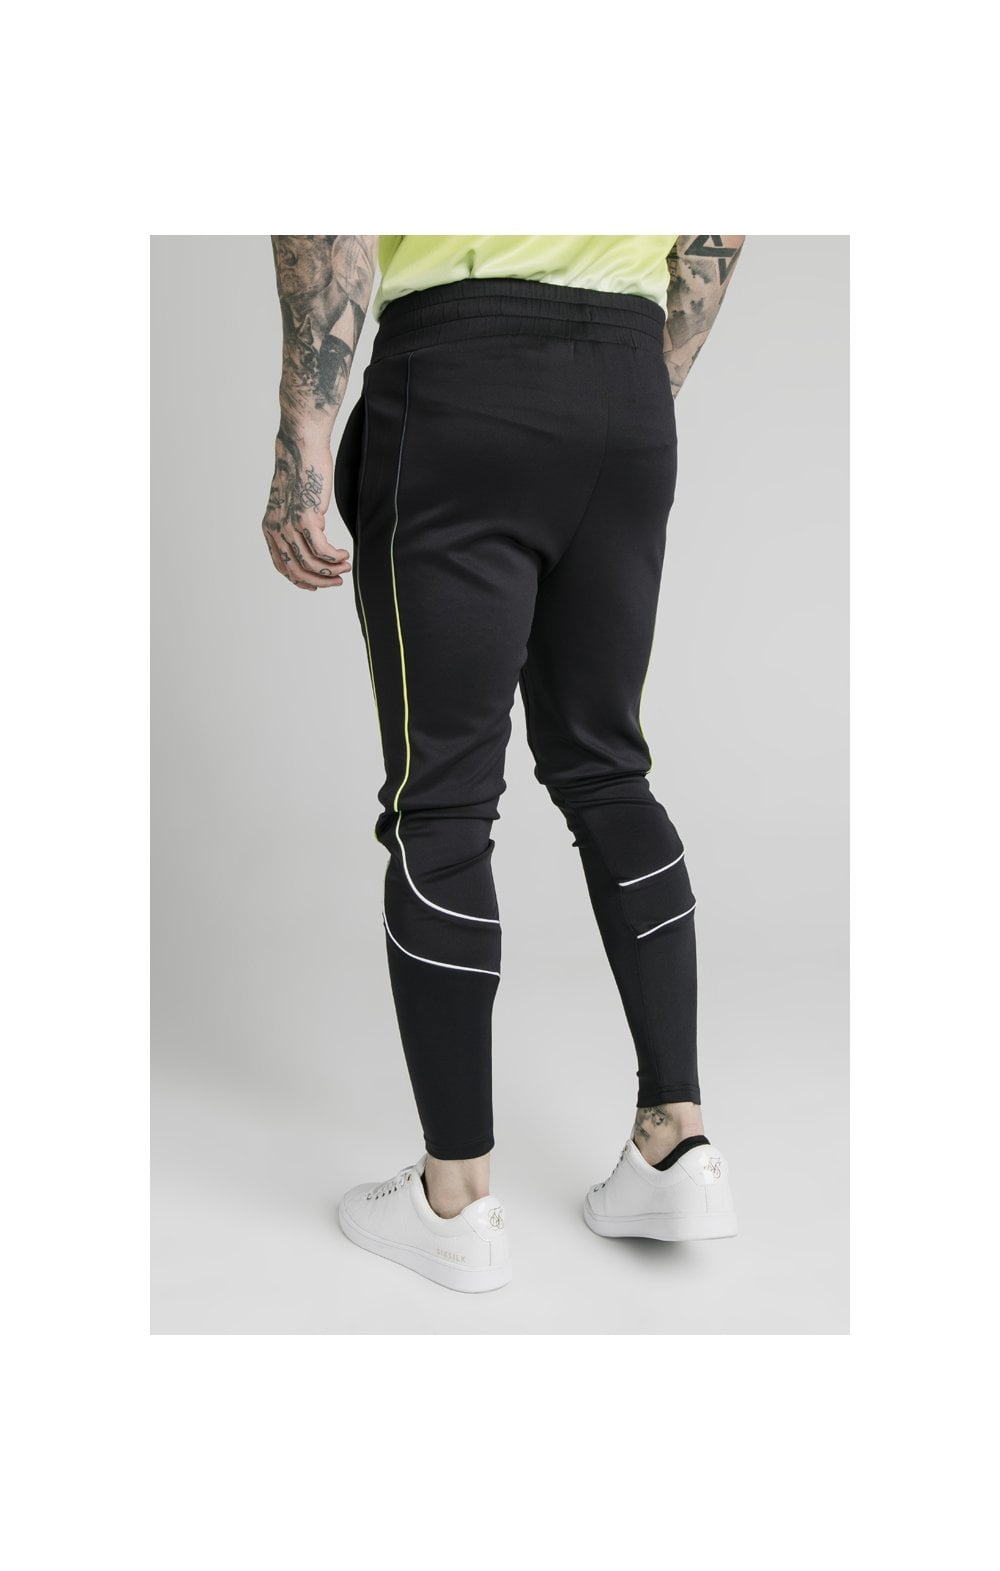 Load image into Gallery viewer, SikSilk Tri Fade Tape Track Pants - Black, Fluro & White (2)